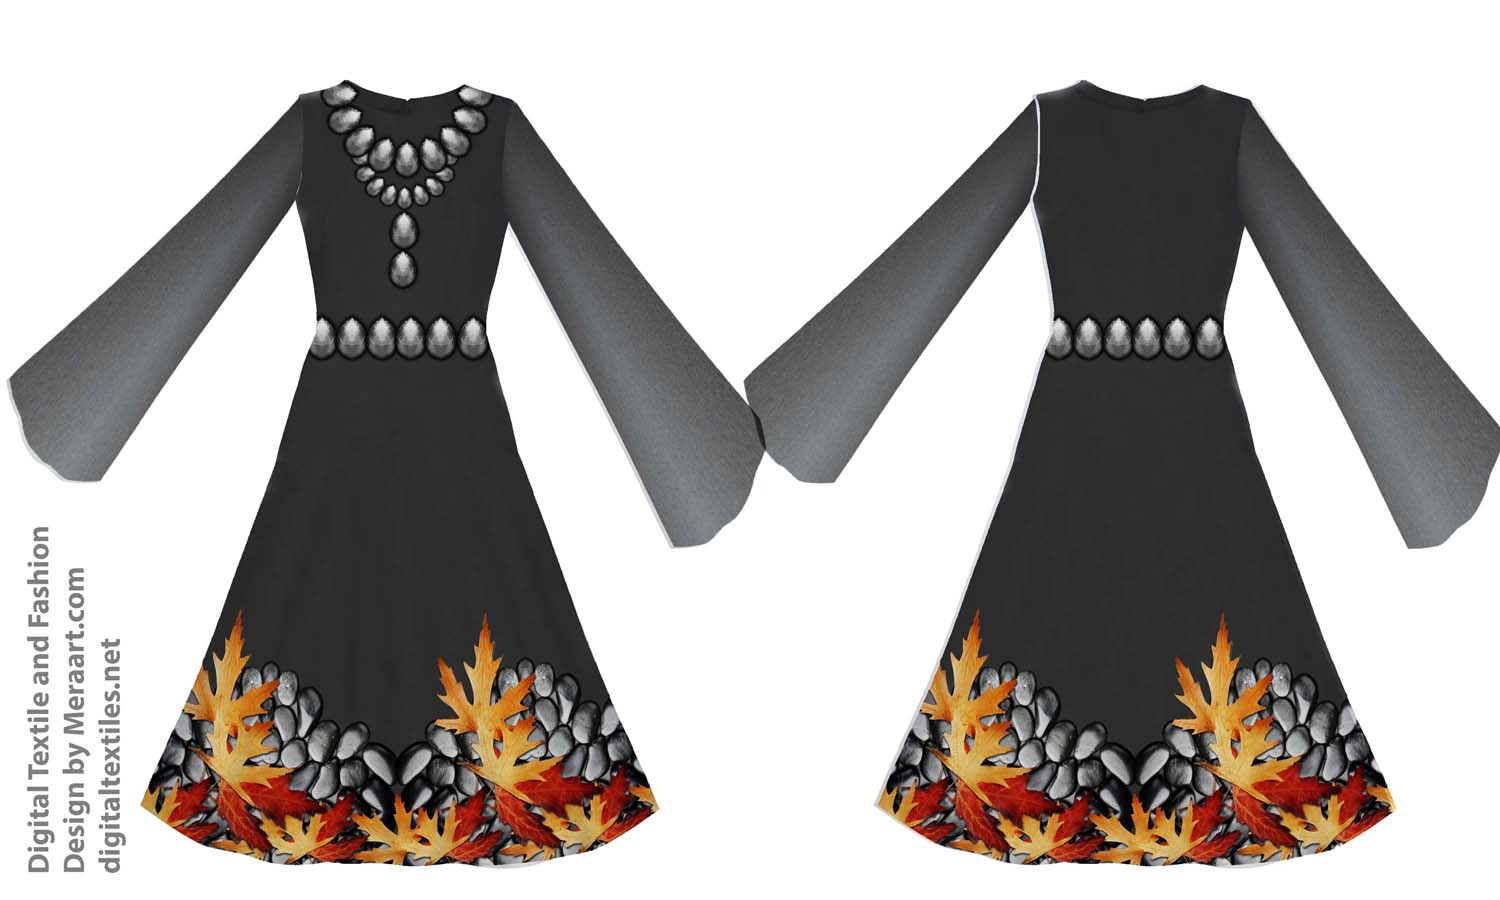 Digital textile fashion prints designer dress online servies (3)